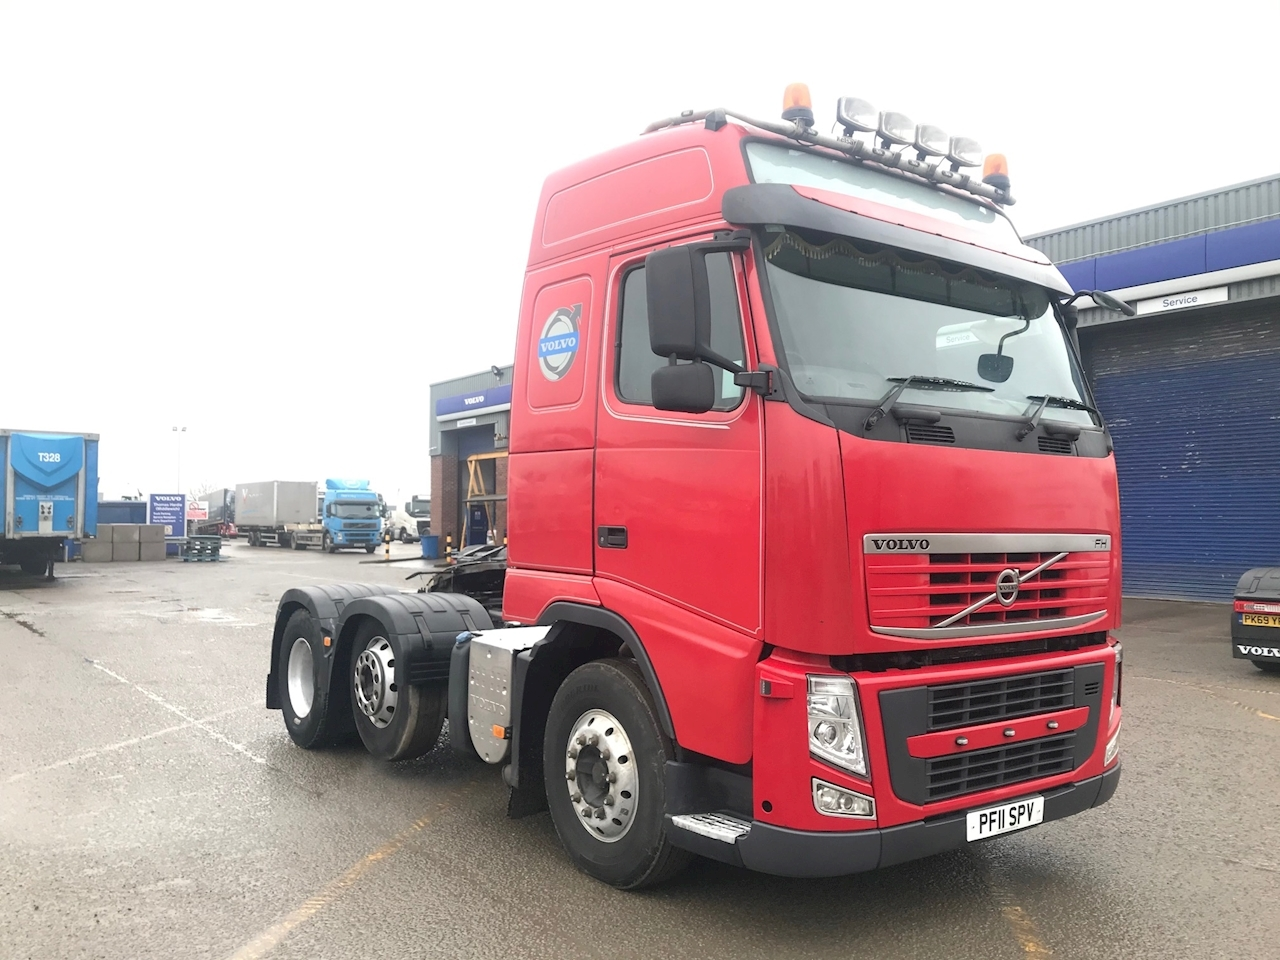 Volvo Fh Fh460 6X2t Pa L2h2 12.8 2dr Tractor (Heavy Haulage) I -S Diesel